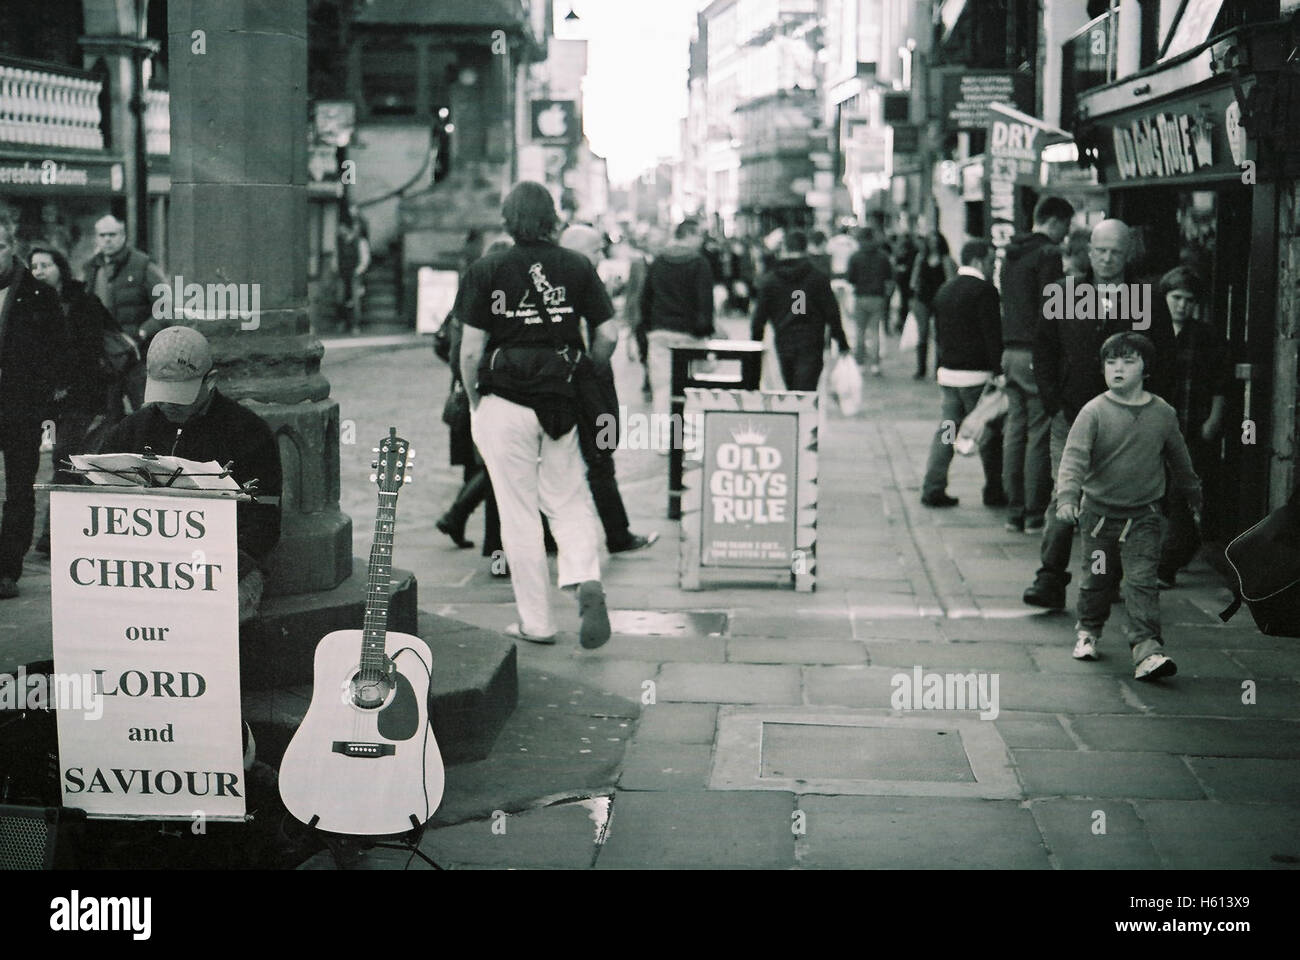 Religious busker with an old guys rule shop sign and street scene at the old cross on Watergate street, in Chester Stock Photo